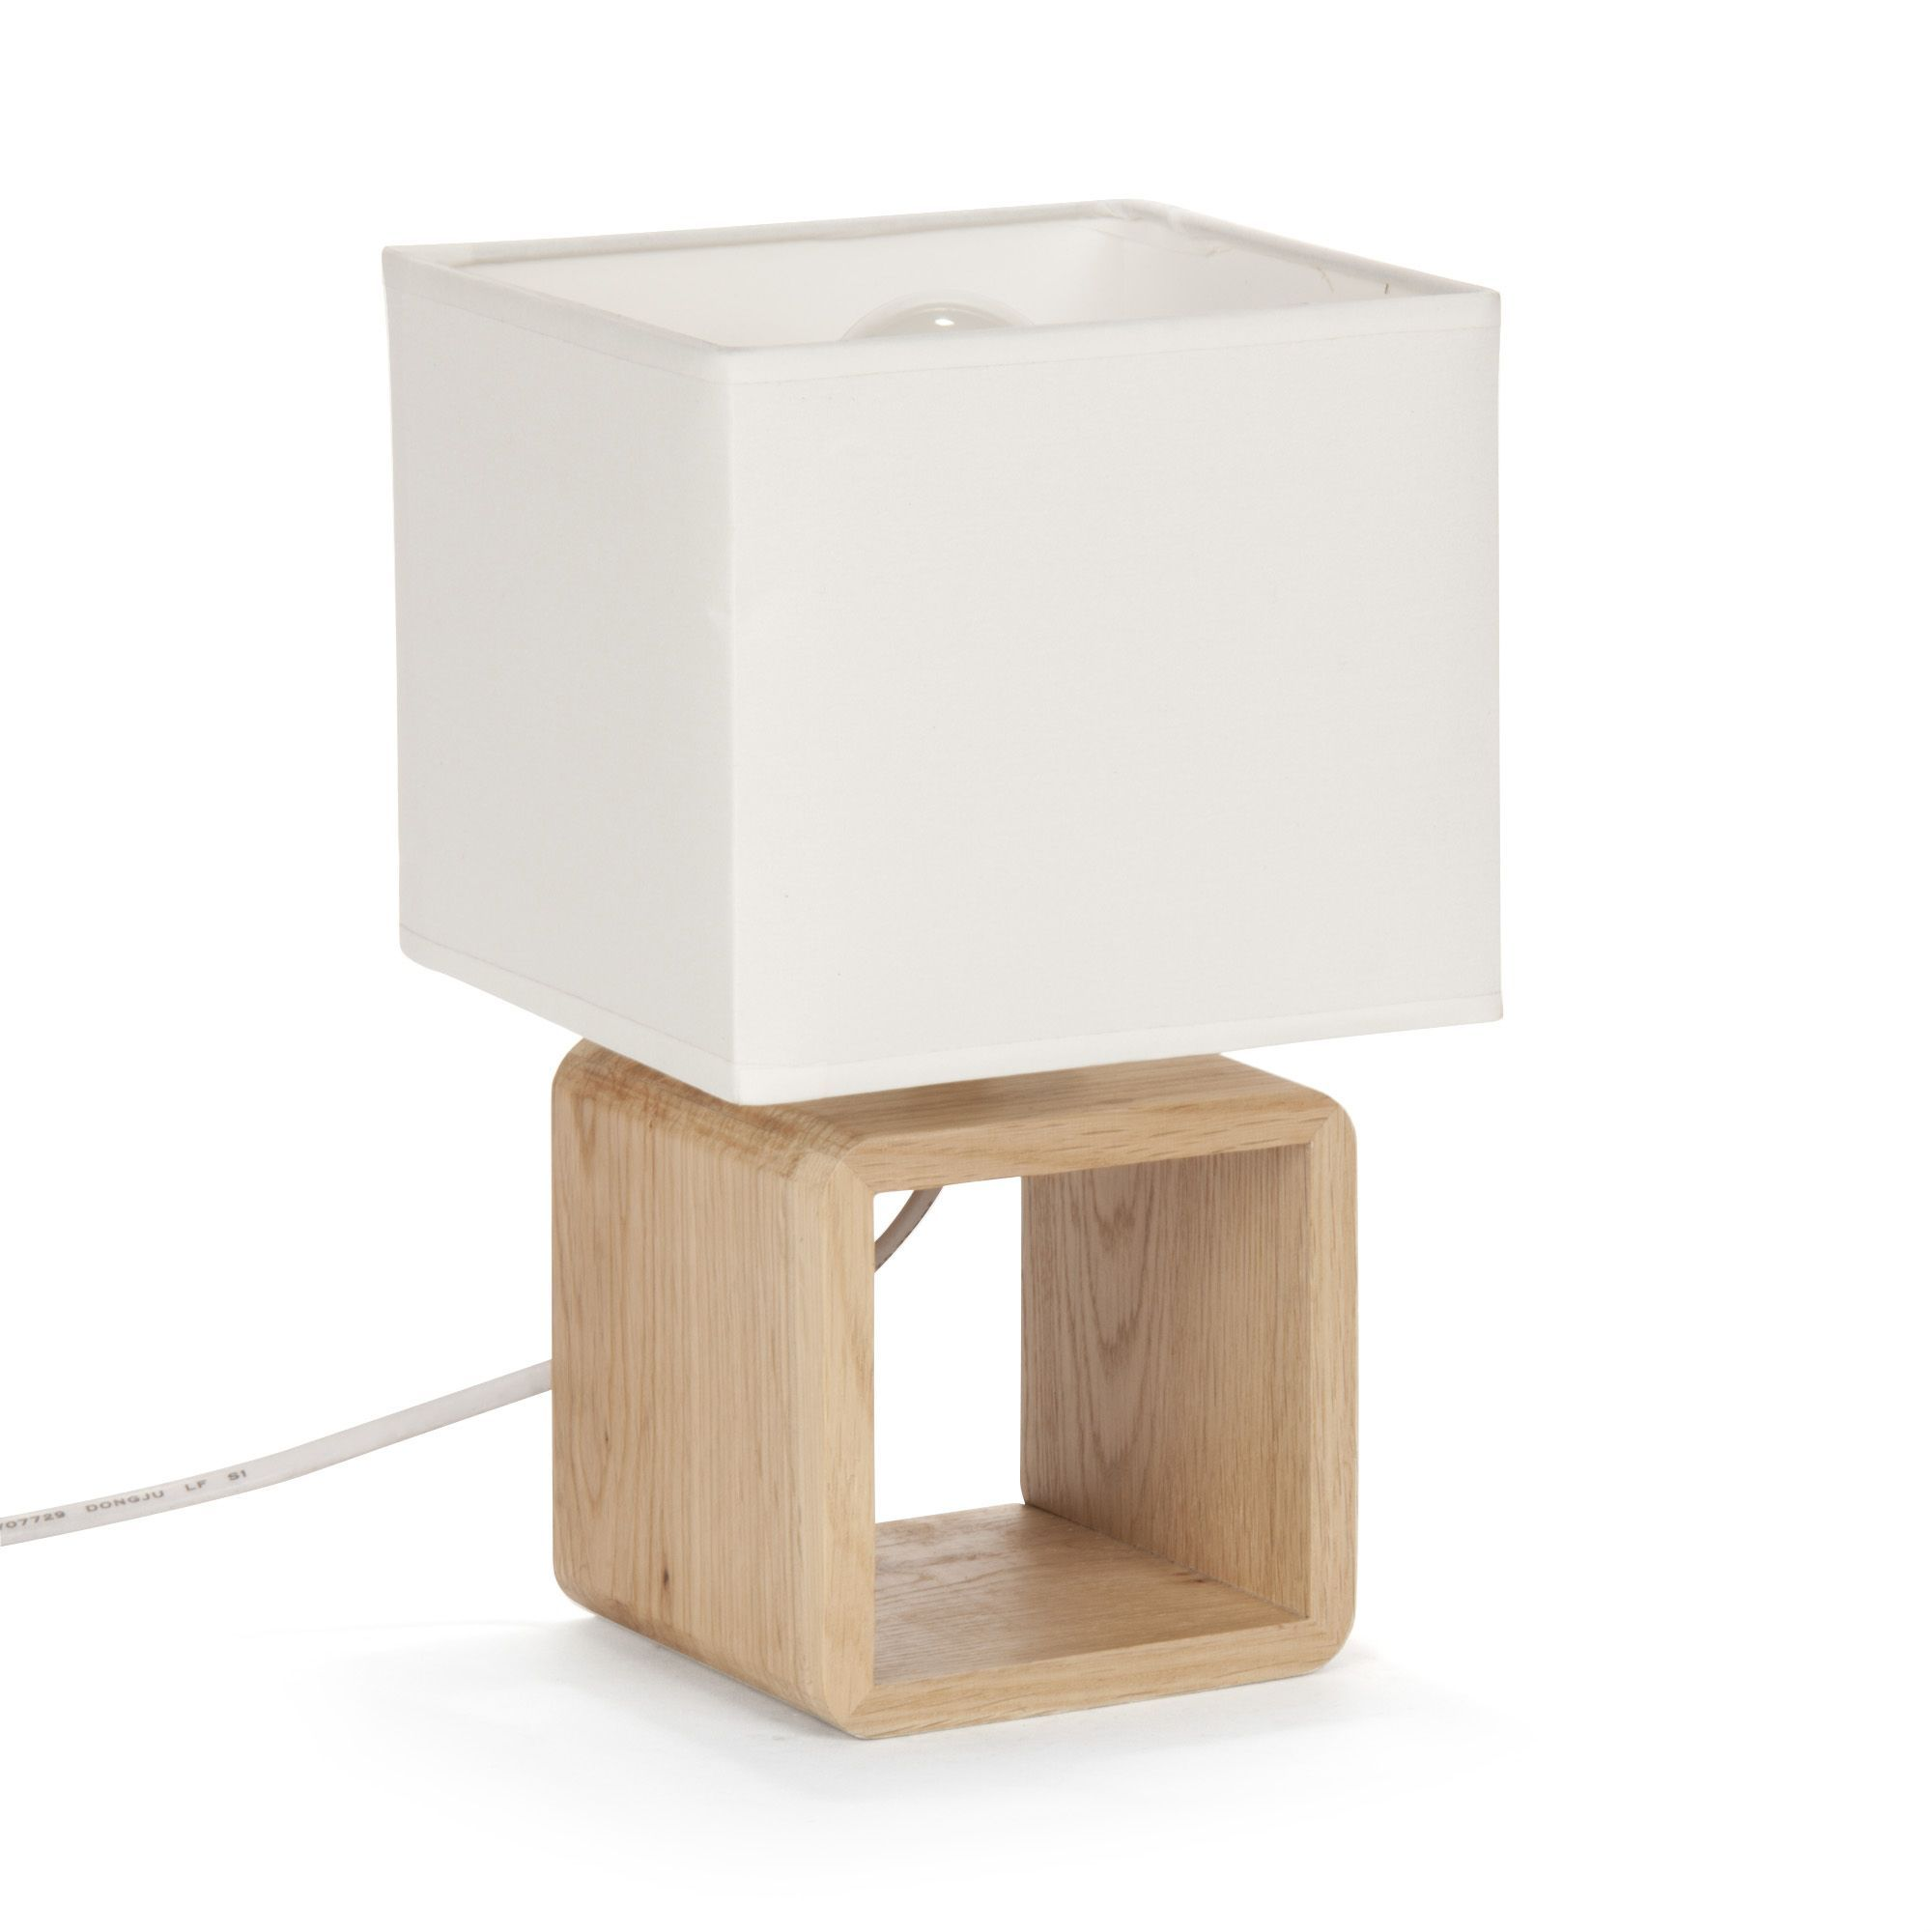 cubo lampes poser luminaires lampe de chevet en bois blanc h25cm for the home pinterest. Black Bedroom Furniture Sets. Home Design Ideas